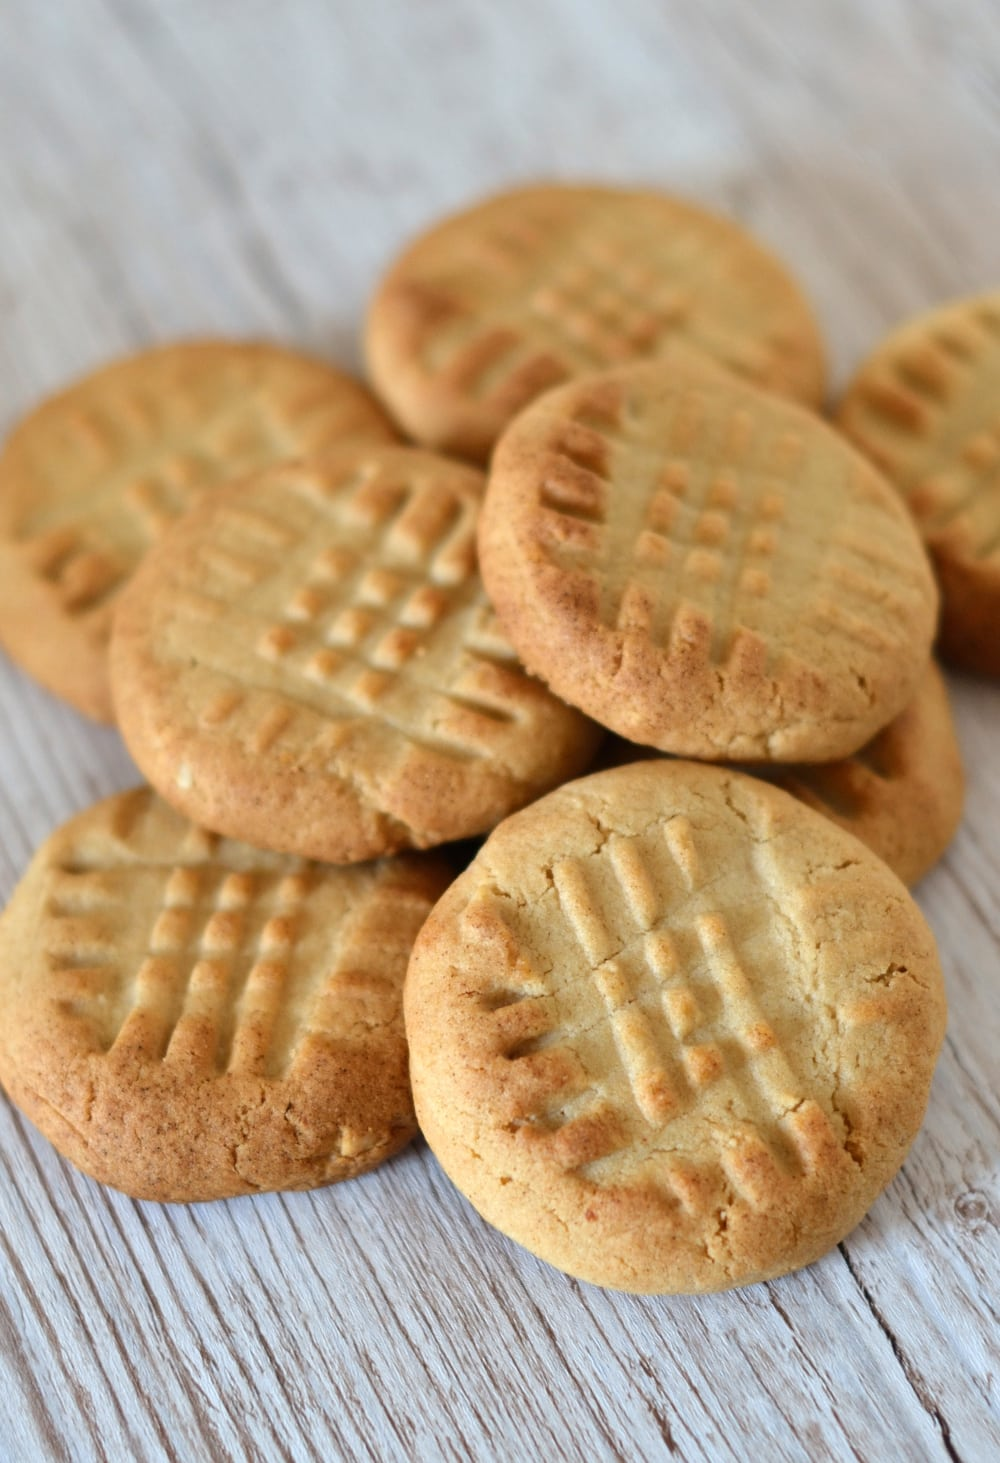 Crunchy Peanut Cookies Recipe - crunchy little biscuits, made with peanut butter.